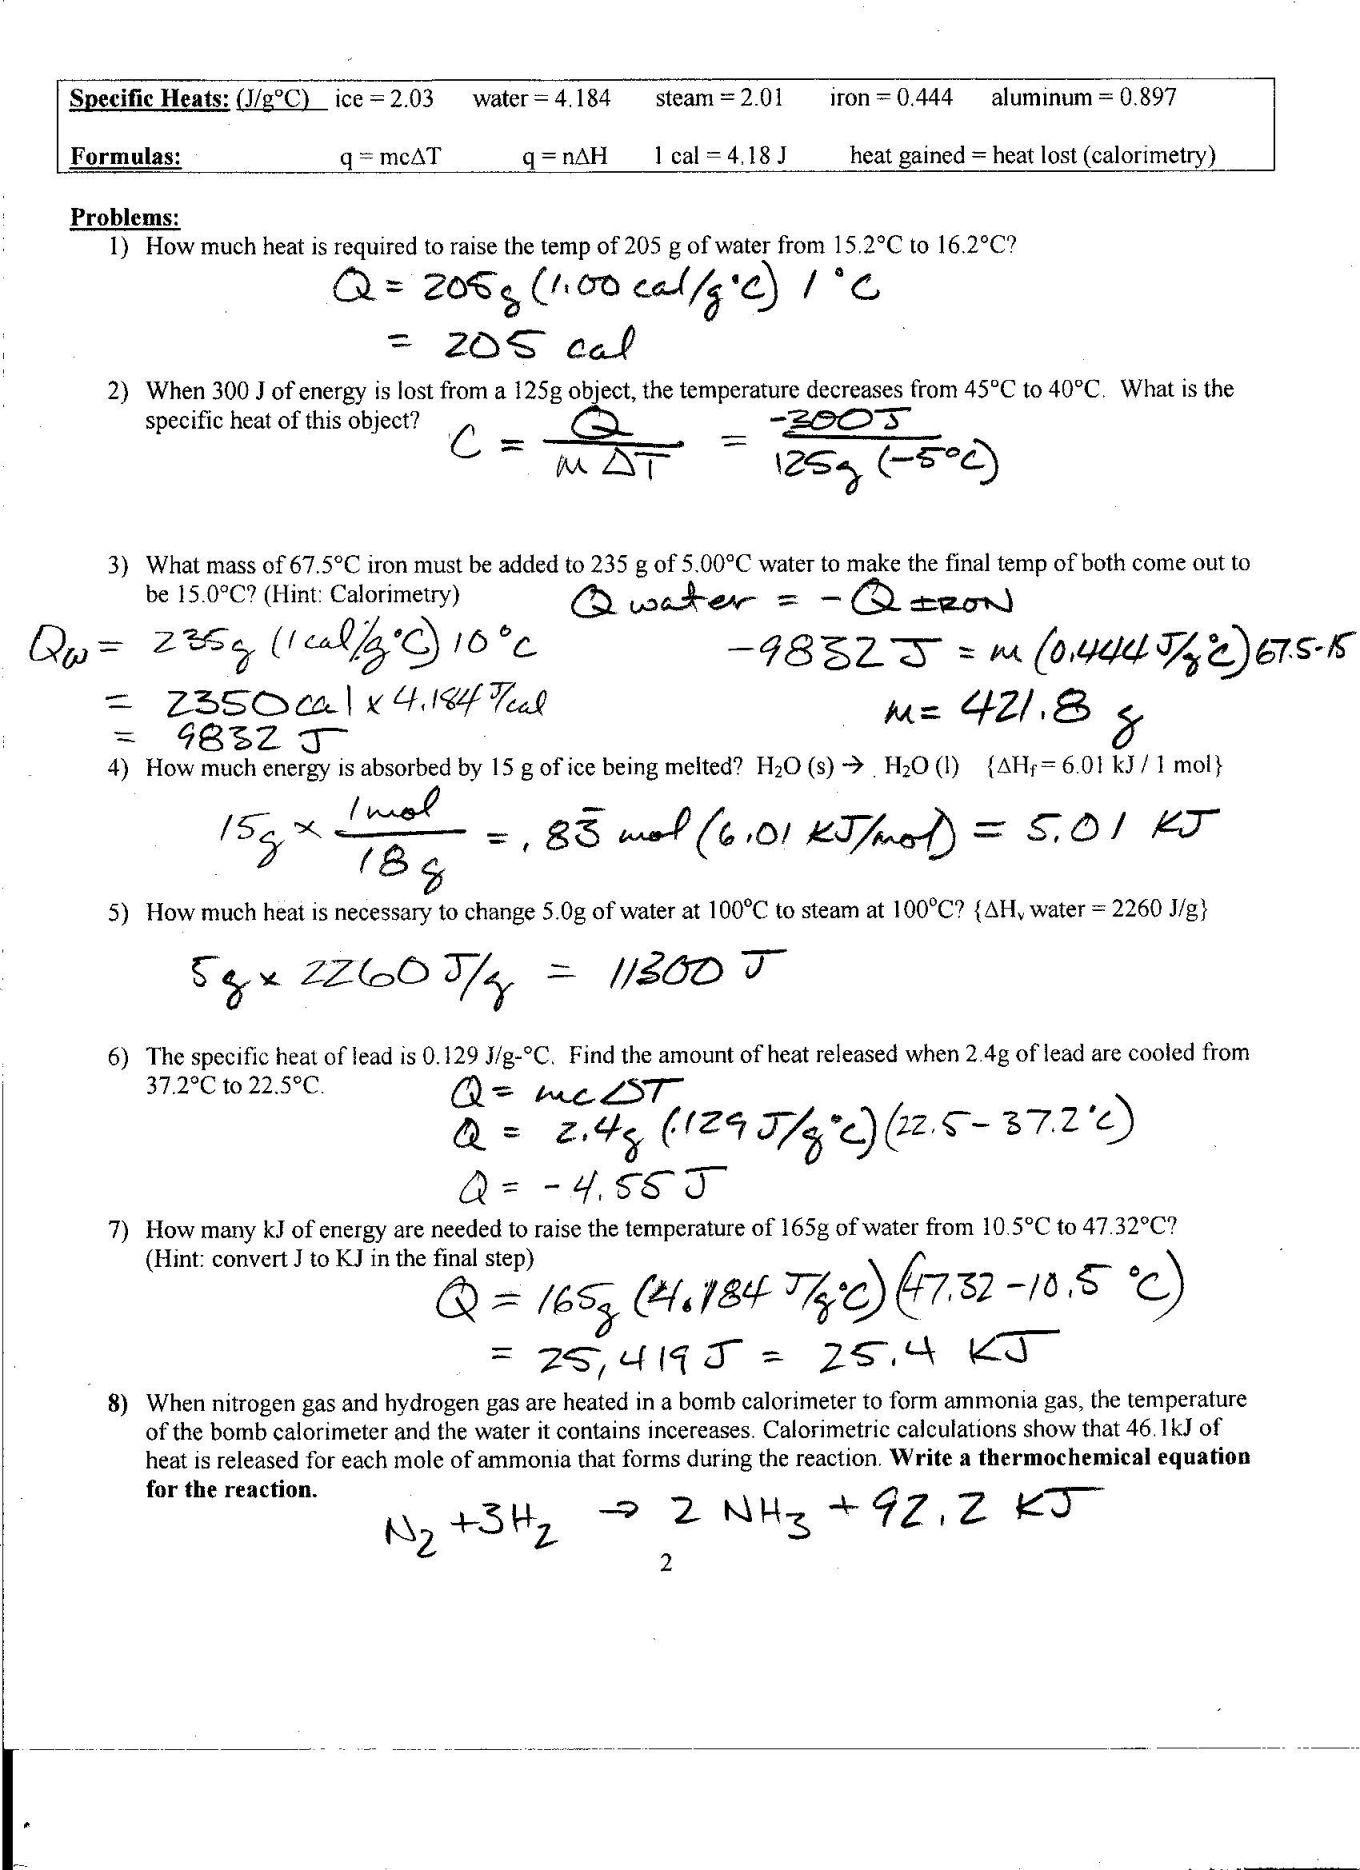 Specific Heat Problems Worksheet Answers